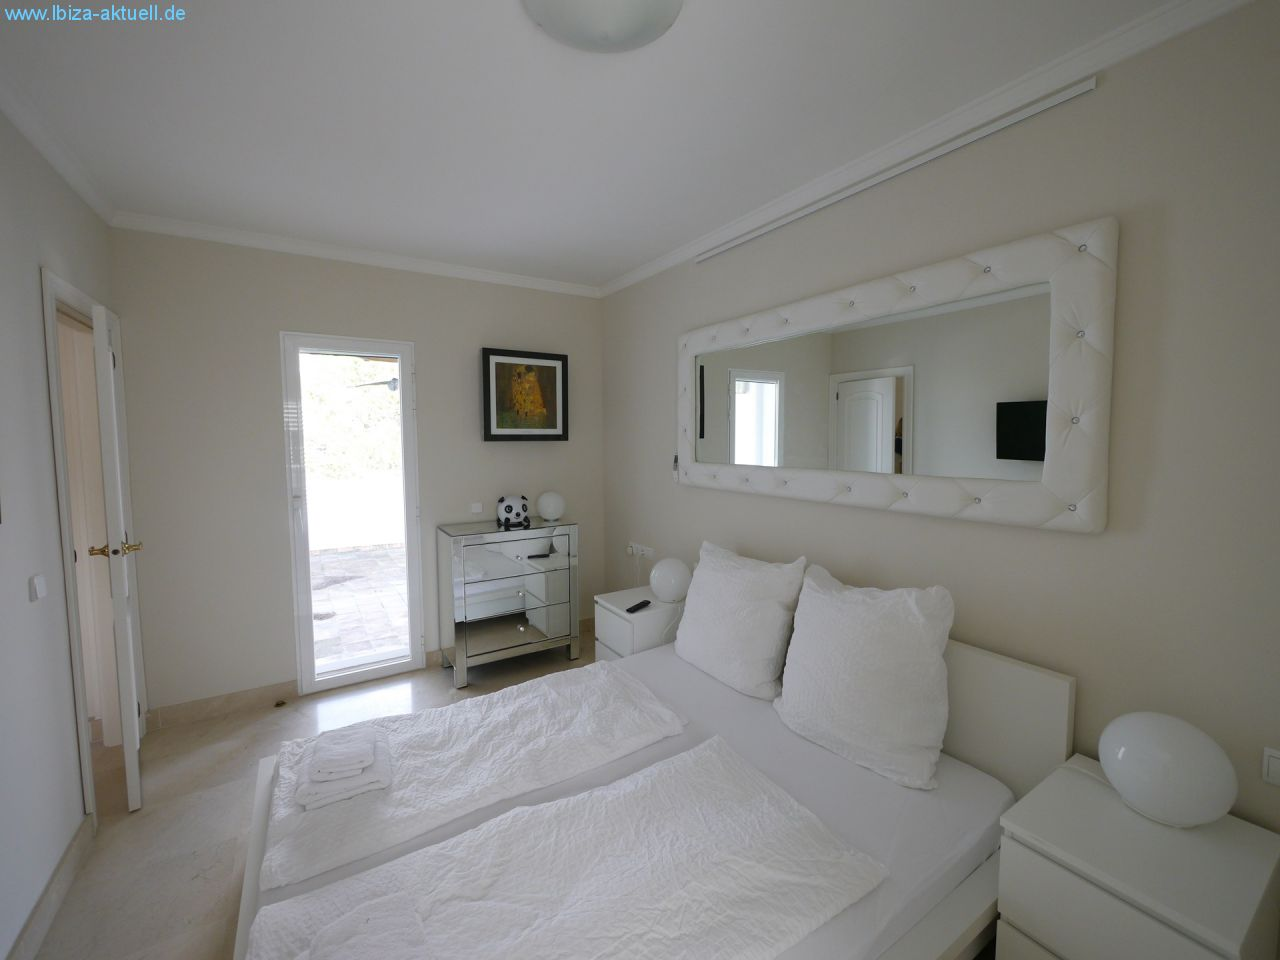 upper bedroom righthandside with terace